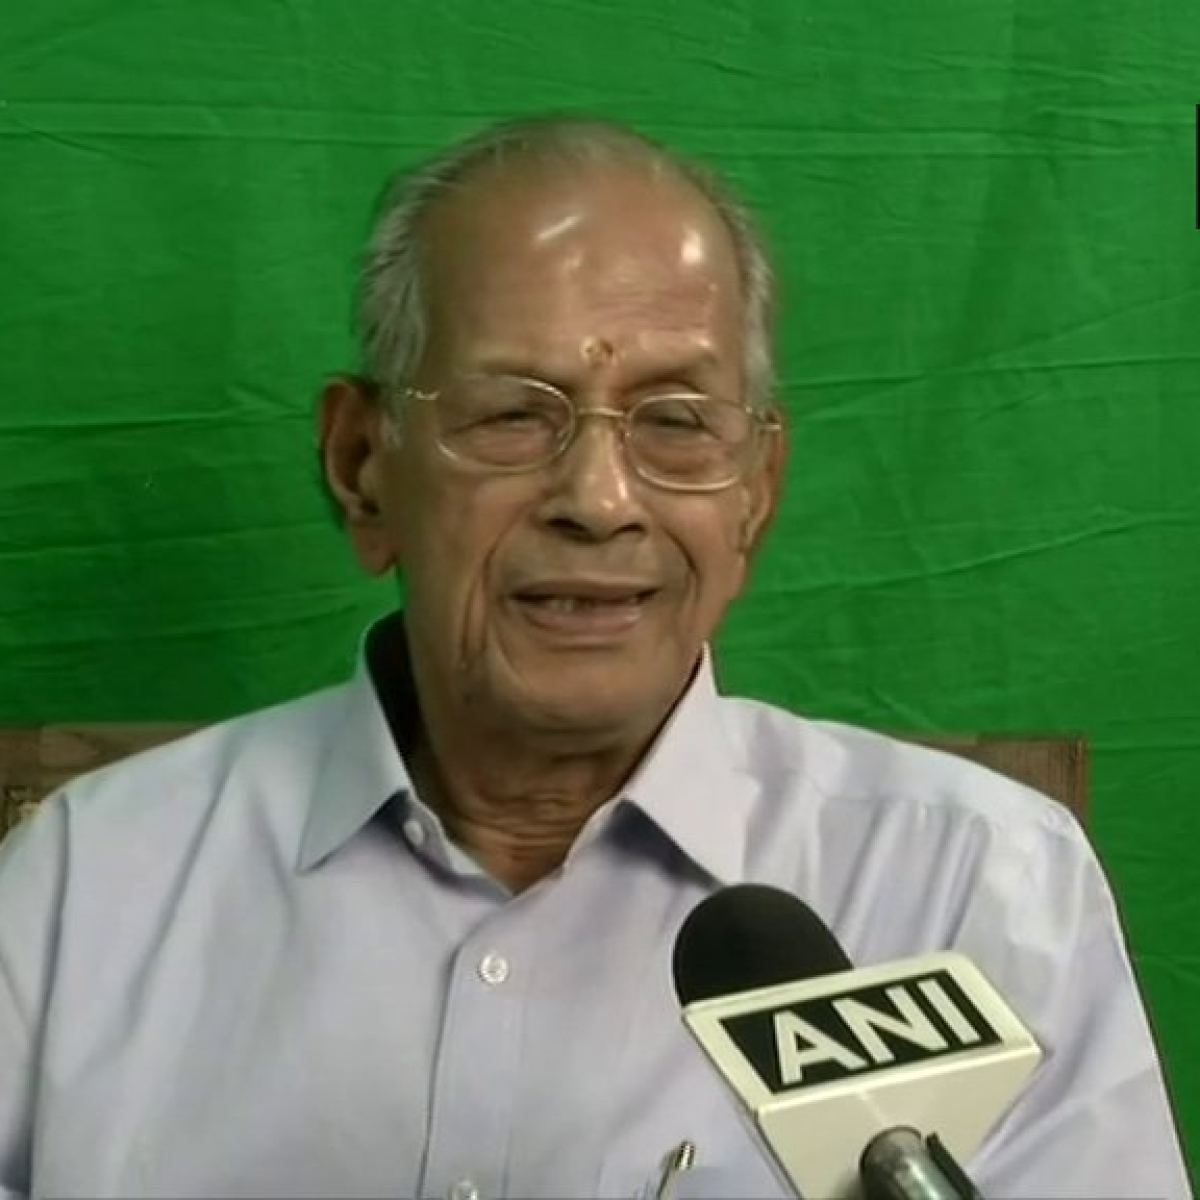 BJP may get majority in Kerala or enough seats to become kingmaker, says E Sreedharan